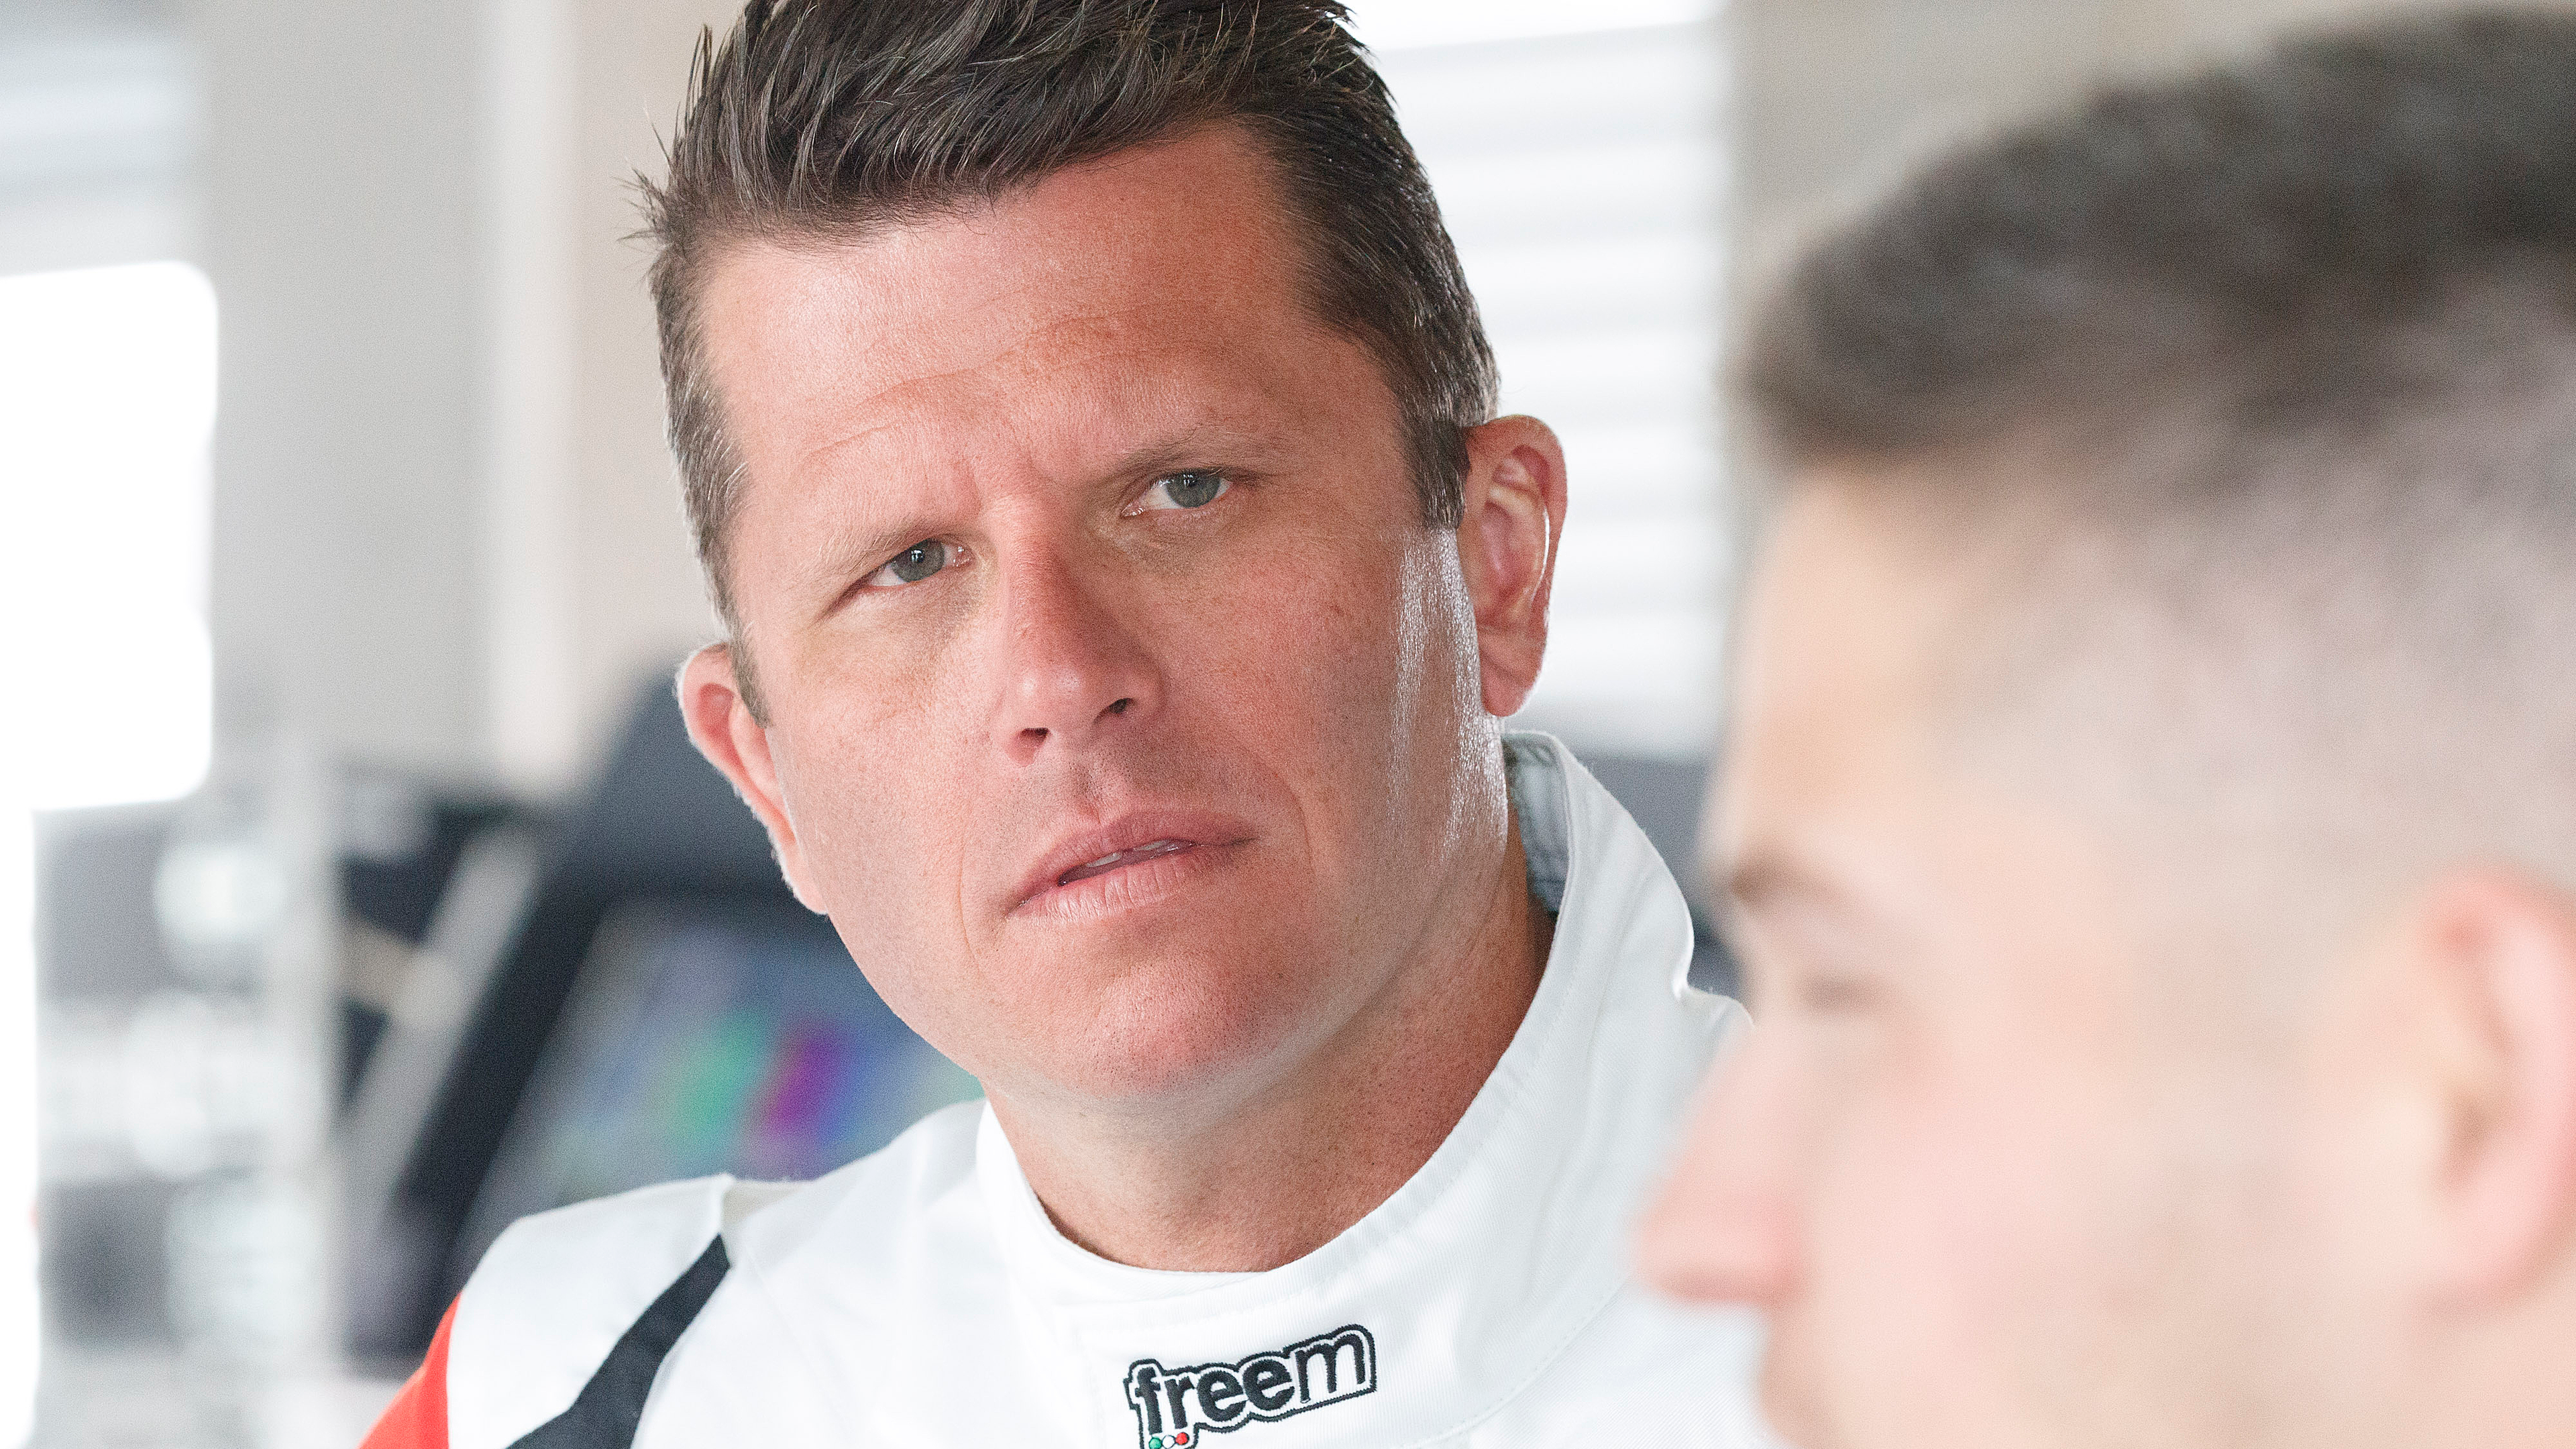 Exclusive: Garth Tander comes to terms with sudden V8 Supercars axing as wife turns rival